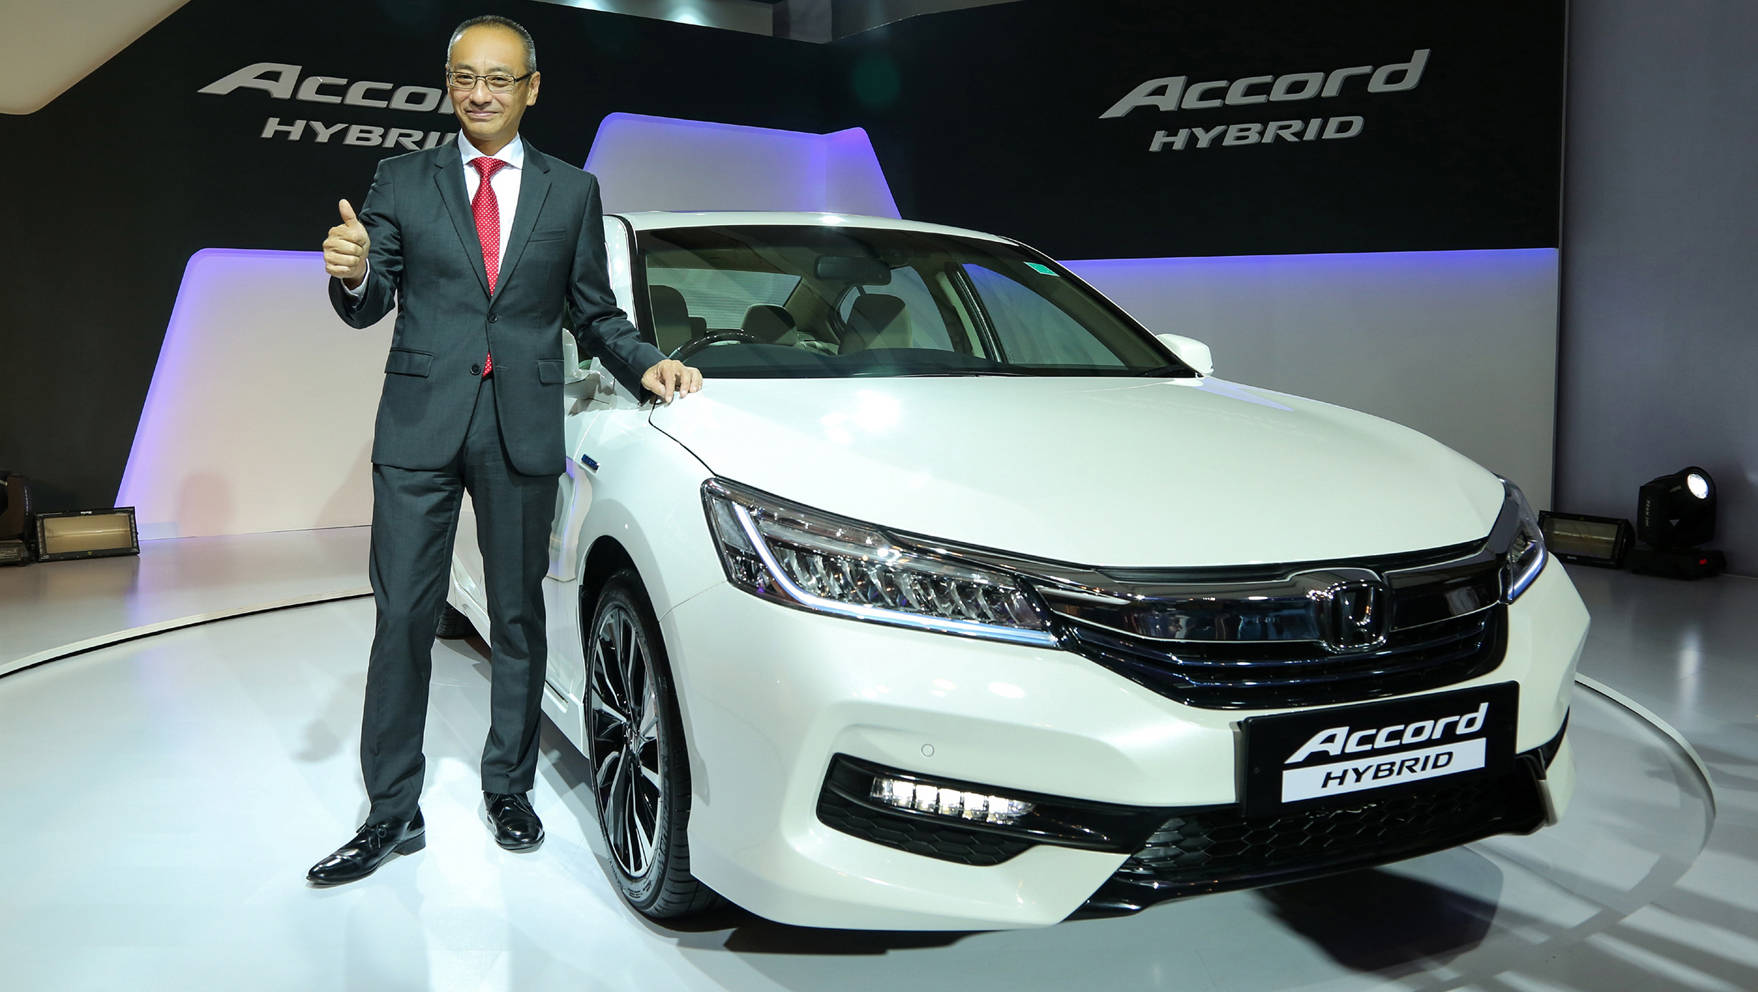 Yoichiro Ueno, president & CEO, Honda Cars India Ltd at the launch of Honda Accord Hybrid in India